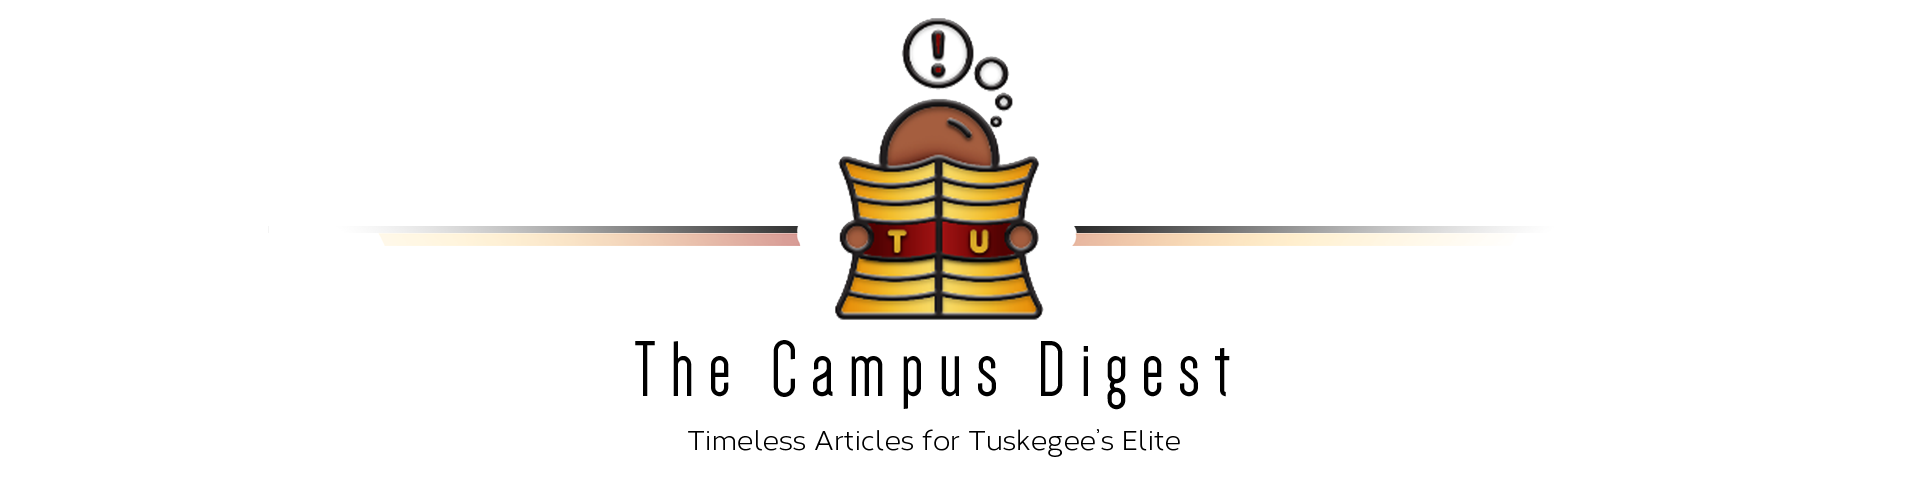 Tuskegee tiger logo black and white clipart png jpg free download Tuskegee University (TU Campus Digest) News and Classifieds jpg free download